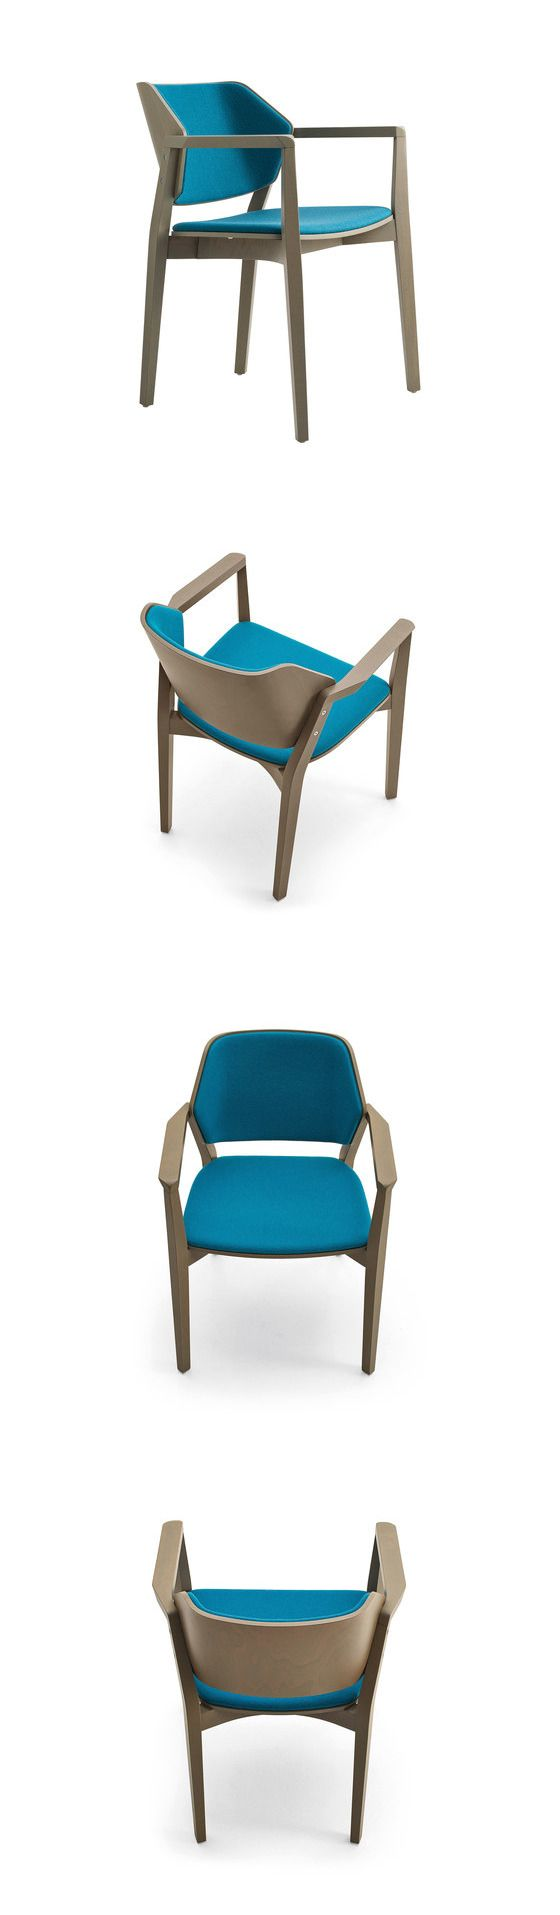 Top hat chair light blue furniture realm - Christopher Coombes Cristiana Giopato Turtle Chair